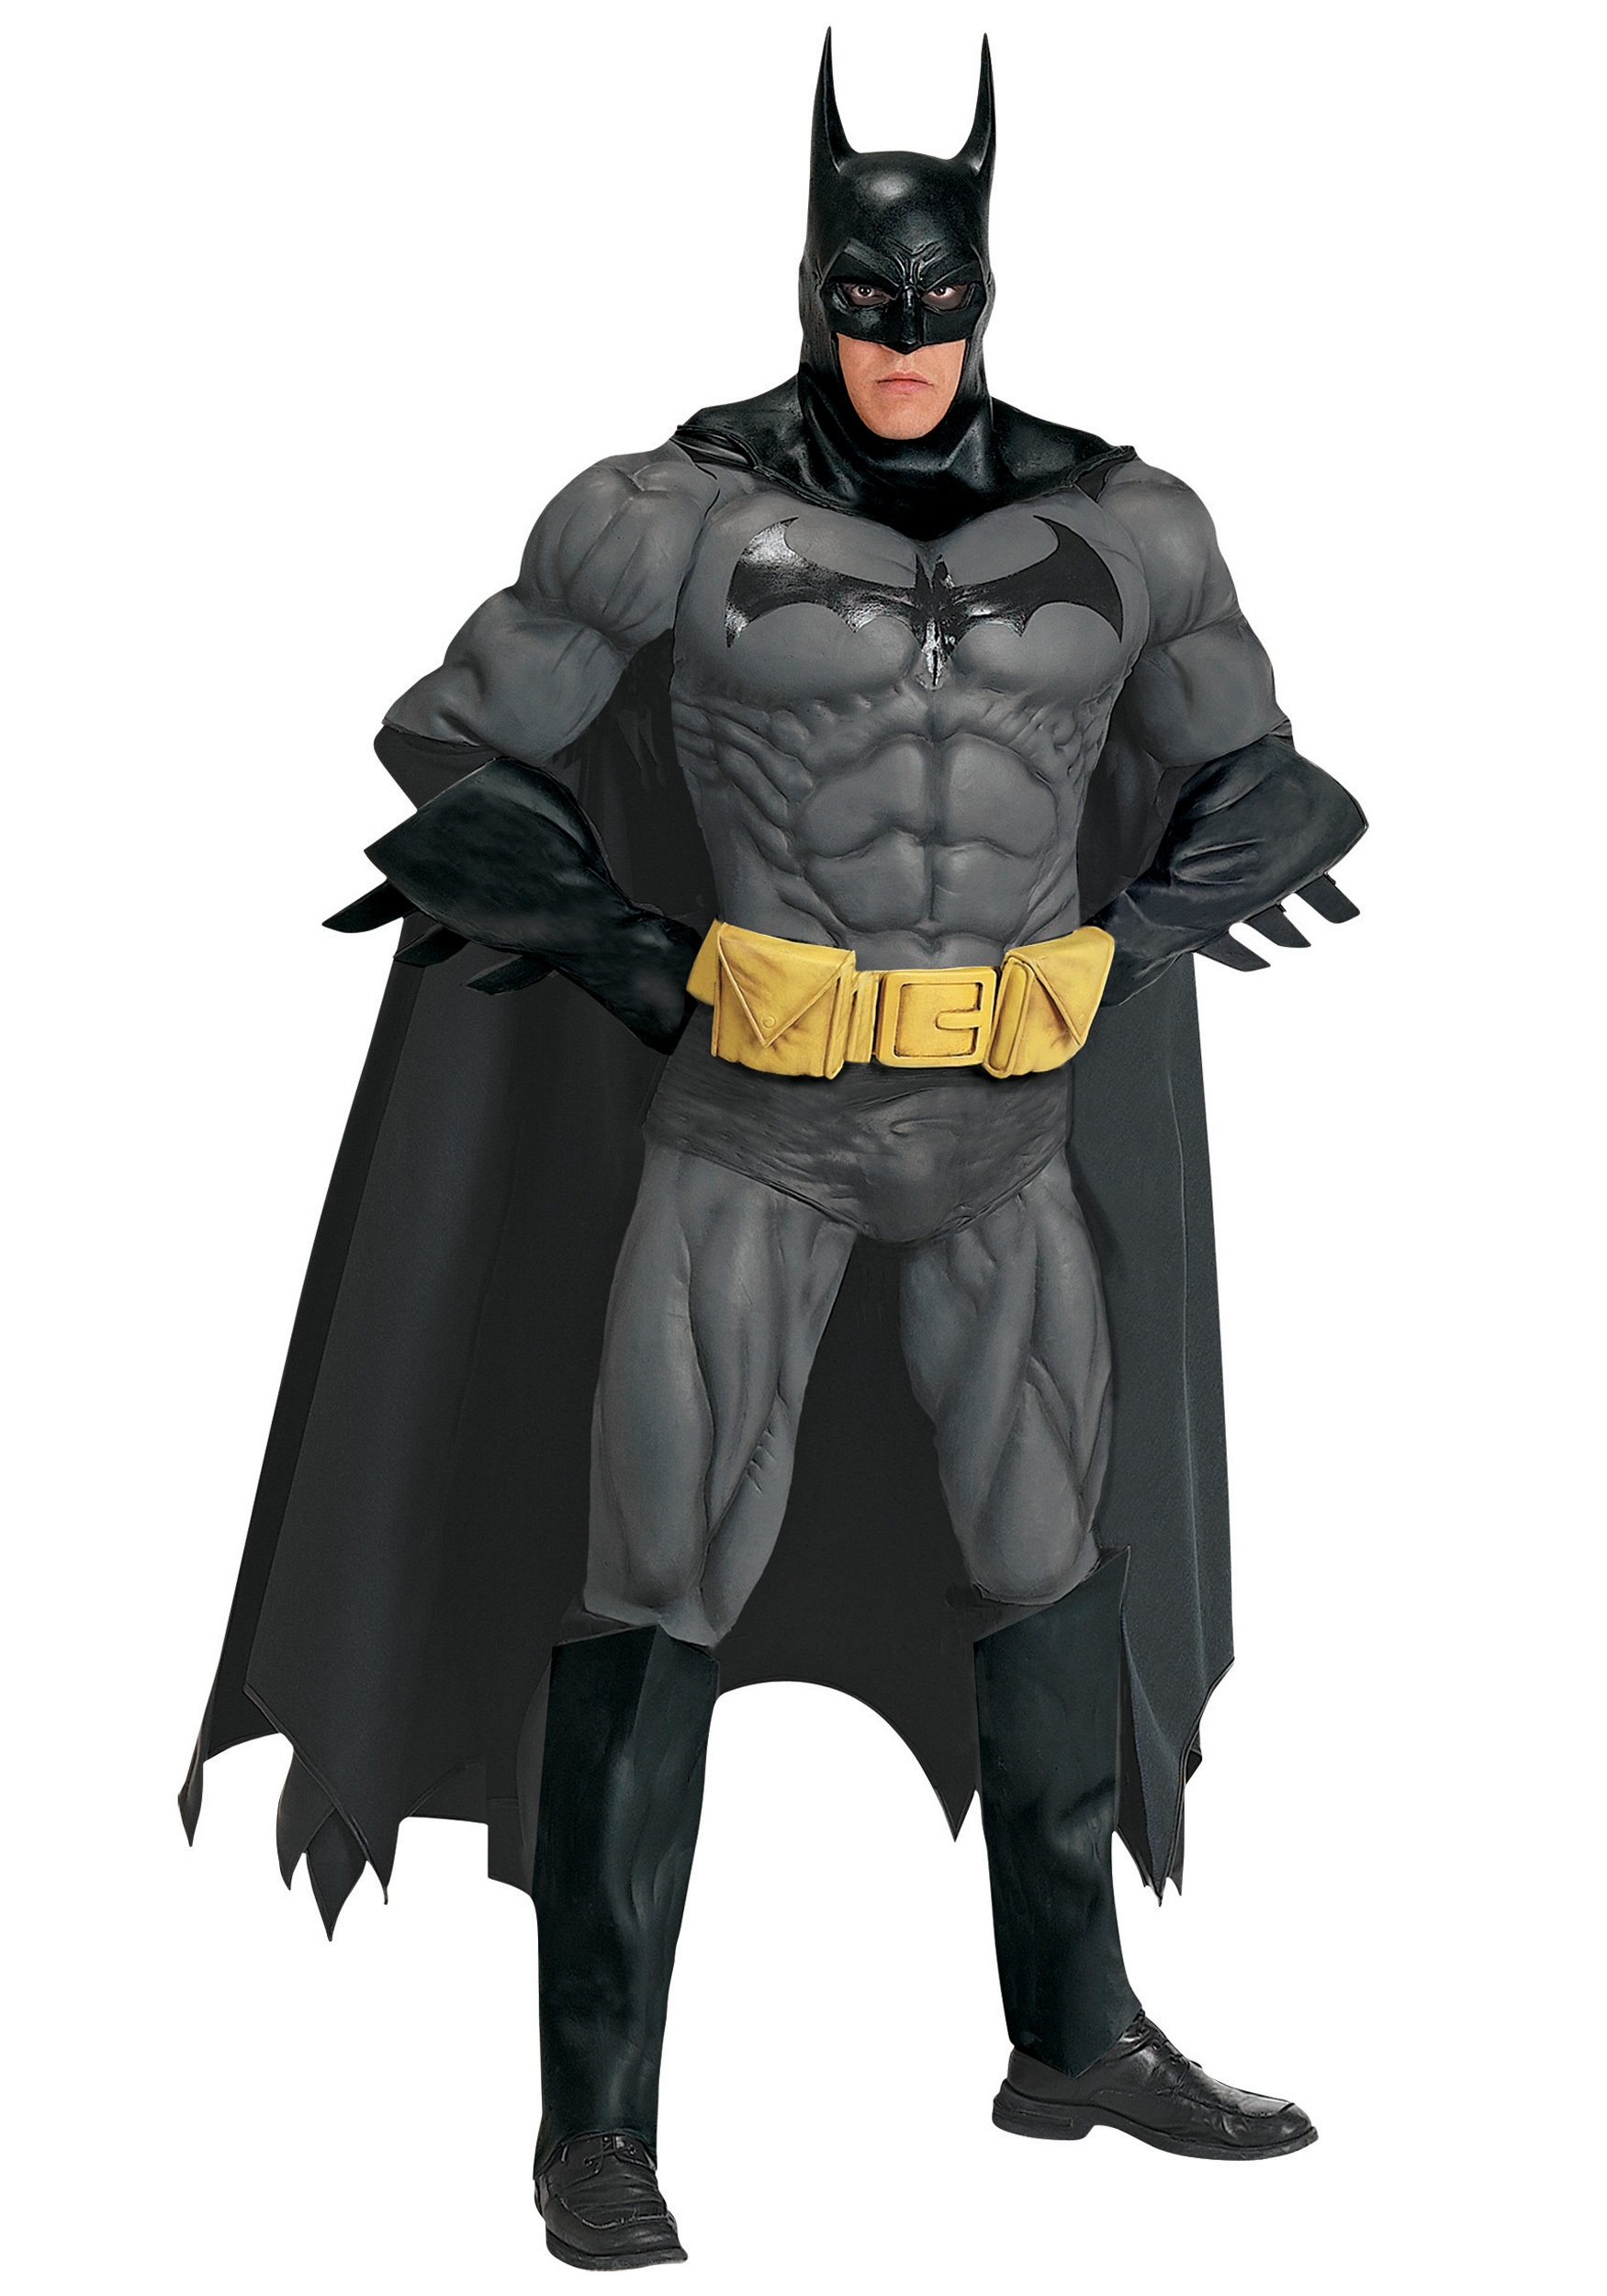 Batman Costumes - Batman and Robin Rental Costumes